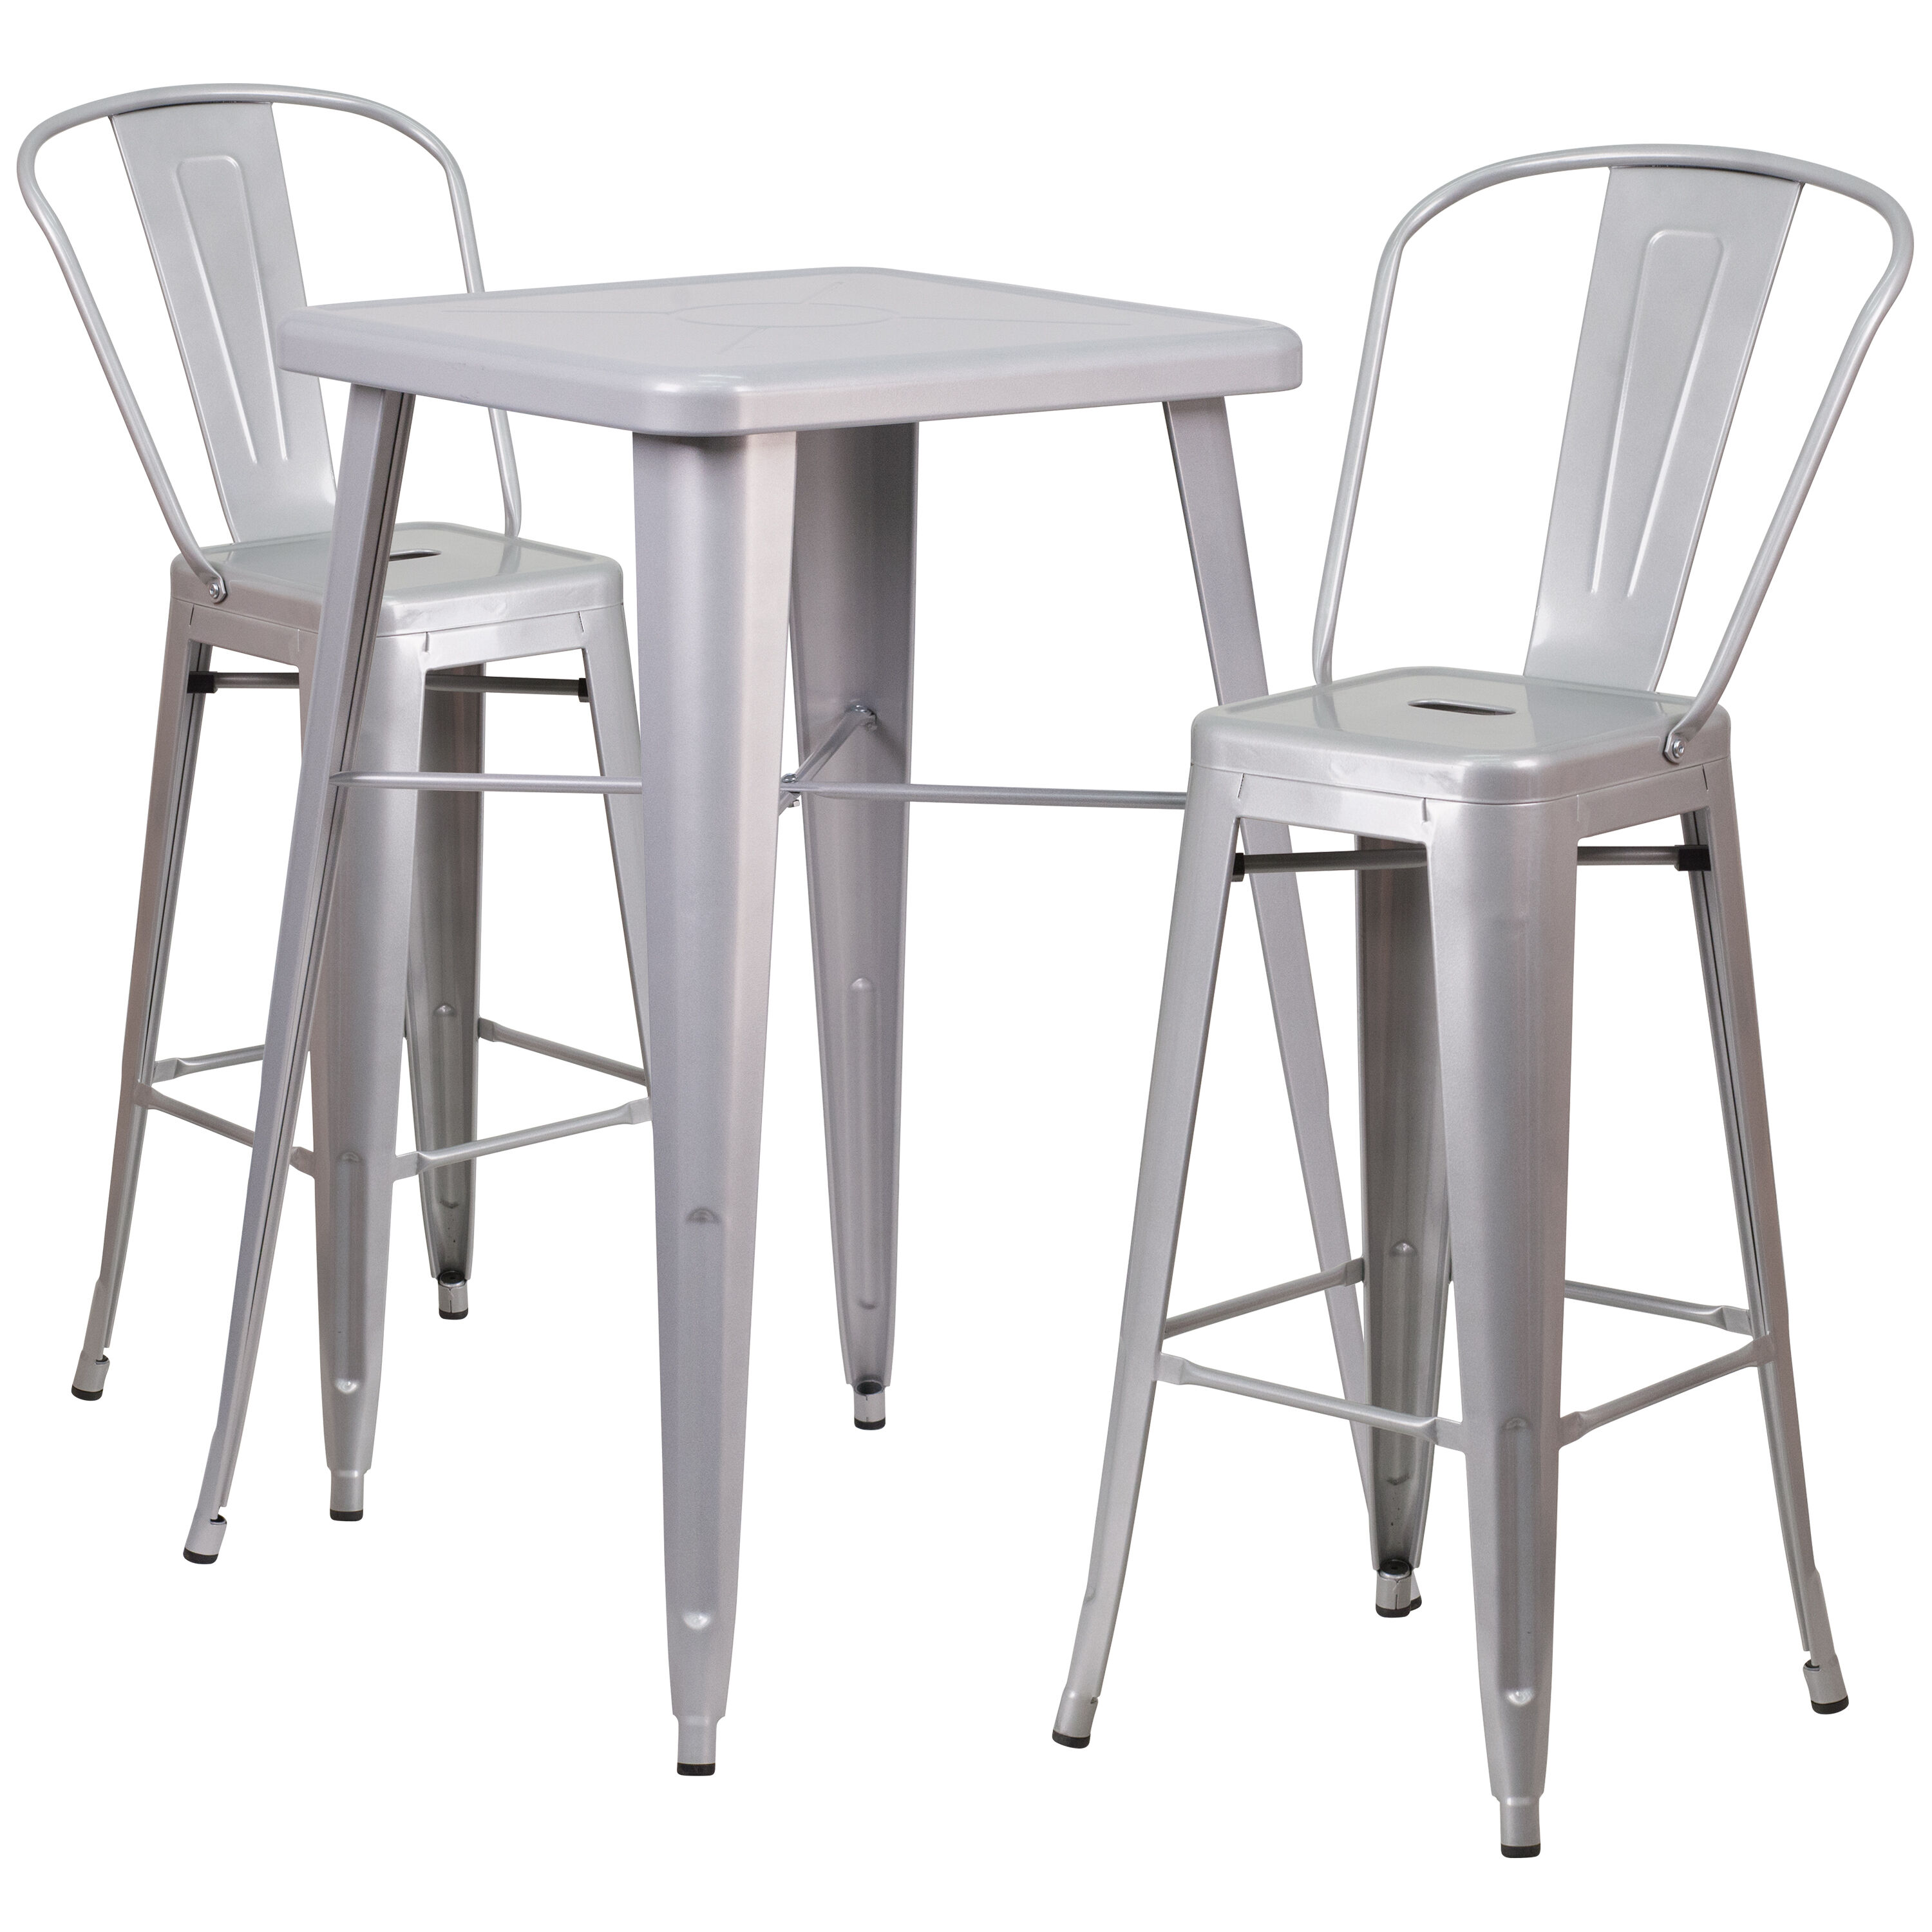 ... Our 23.75u0027u0027 Square Silver Metal Indoor-Outdoor Bar Table Set with 2 Stools  sc 1 st  Restaurant Furniture 4 Less & 23.75SQ Silver Metal Bar Set CH-31330B-2-30GB-SIL-GG ...